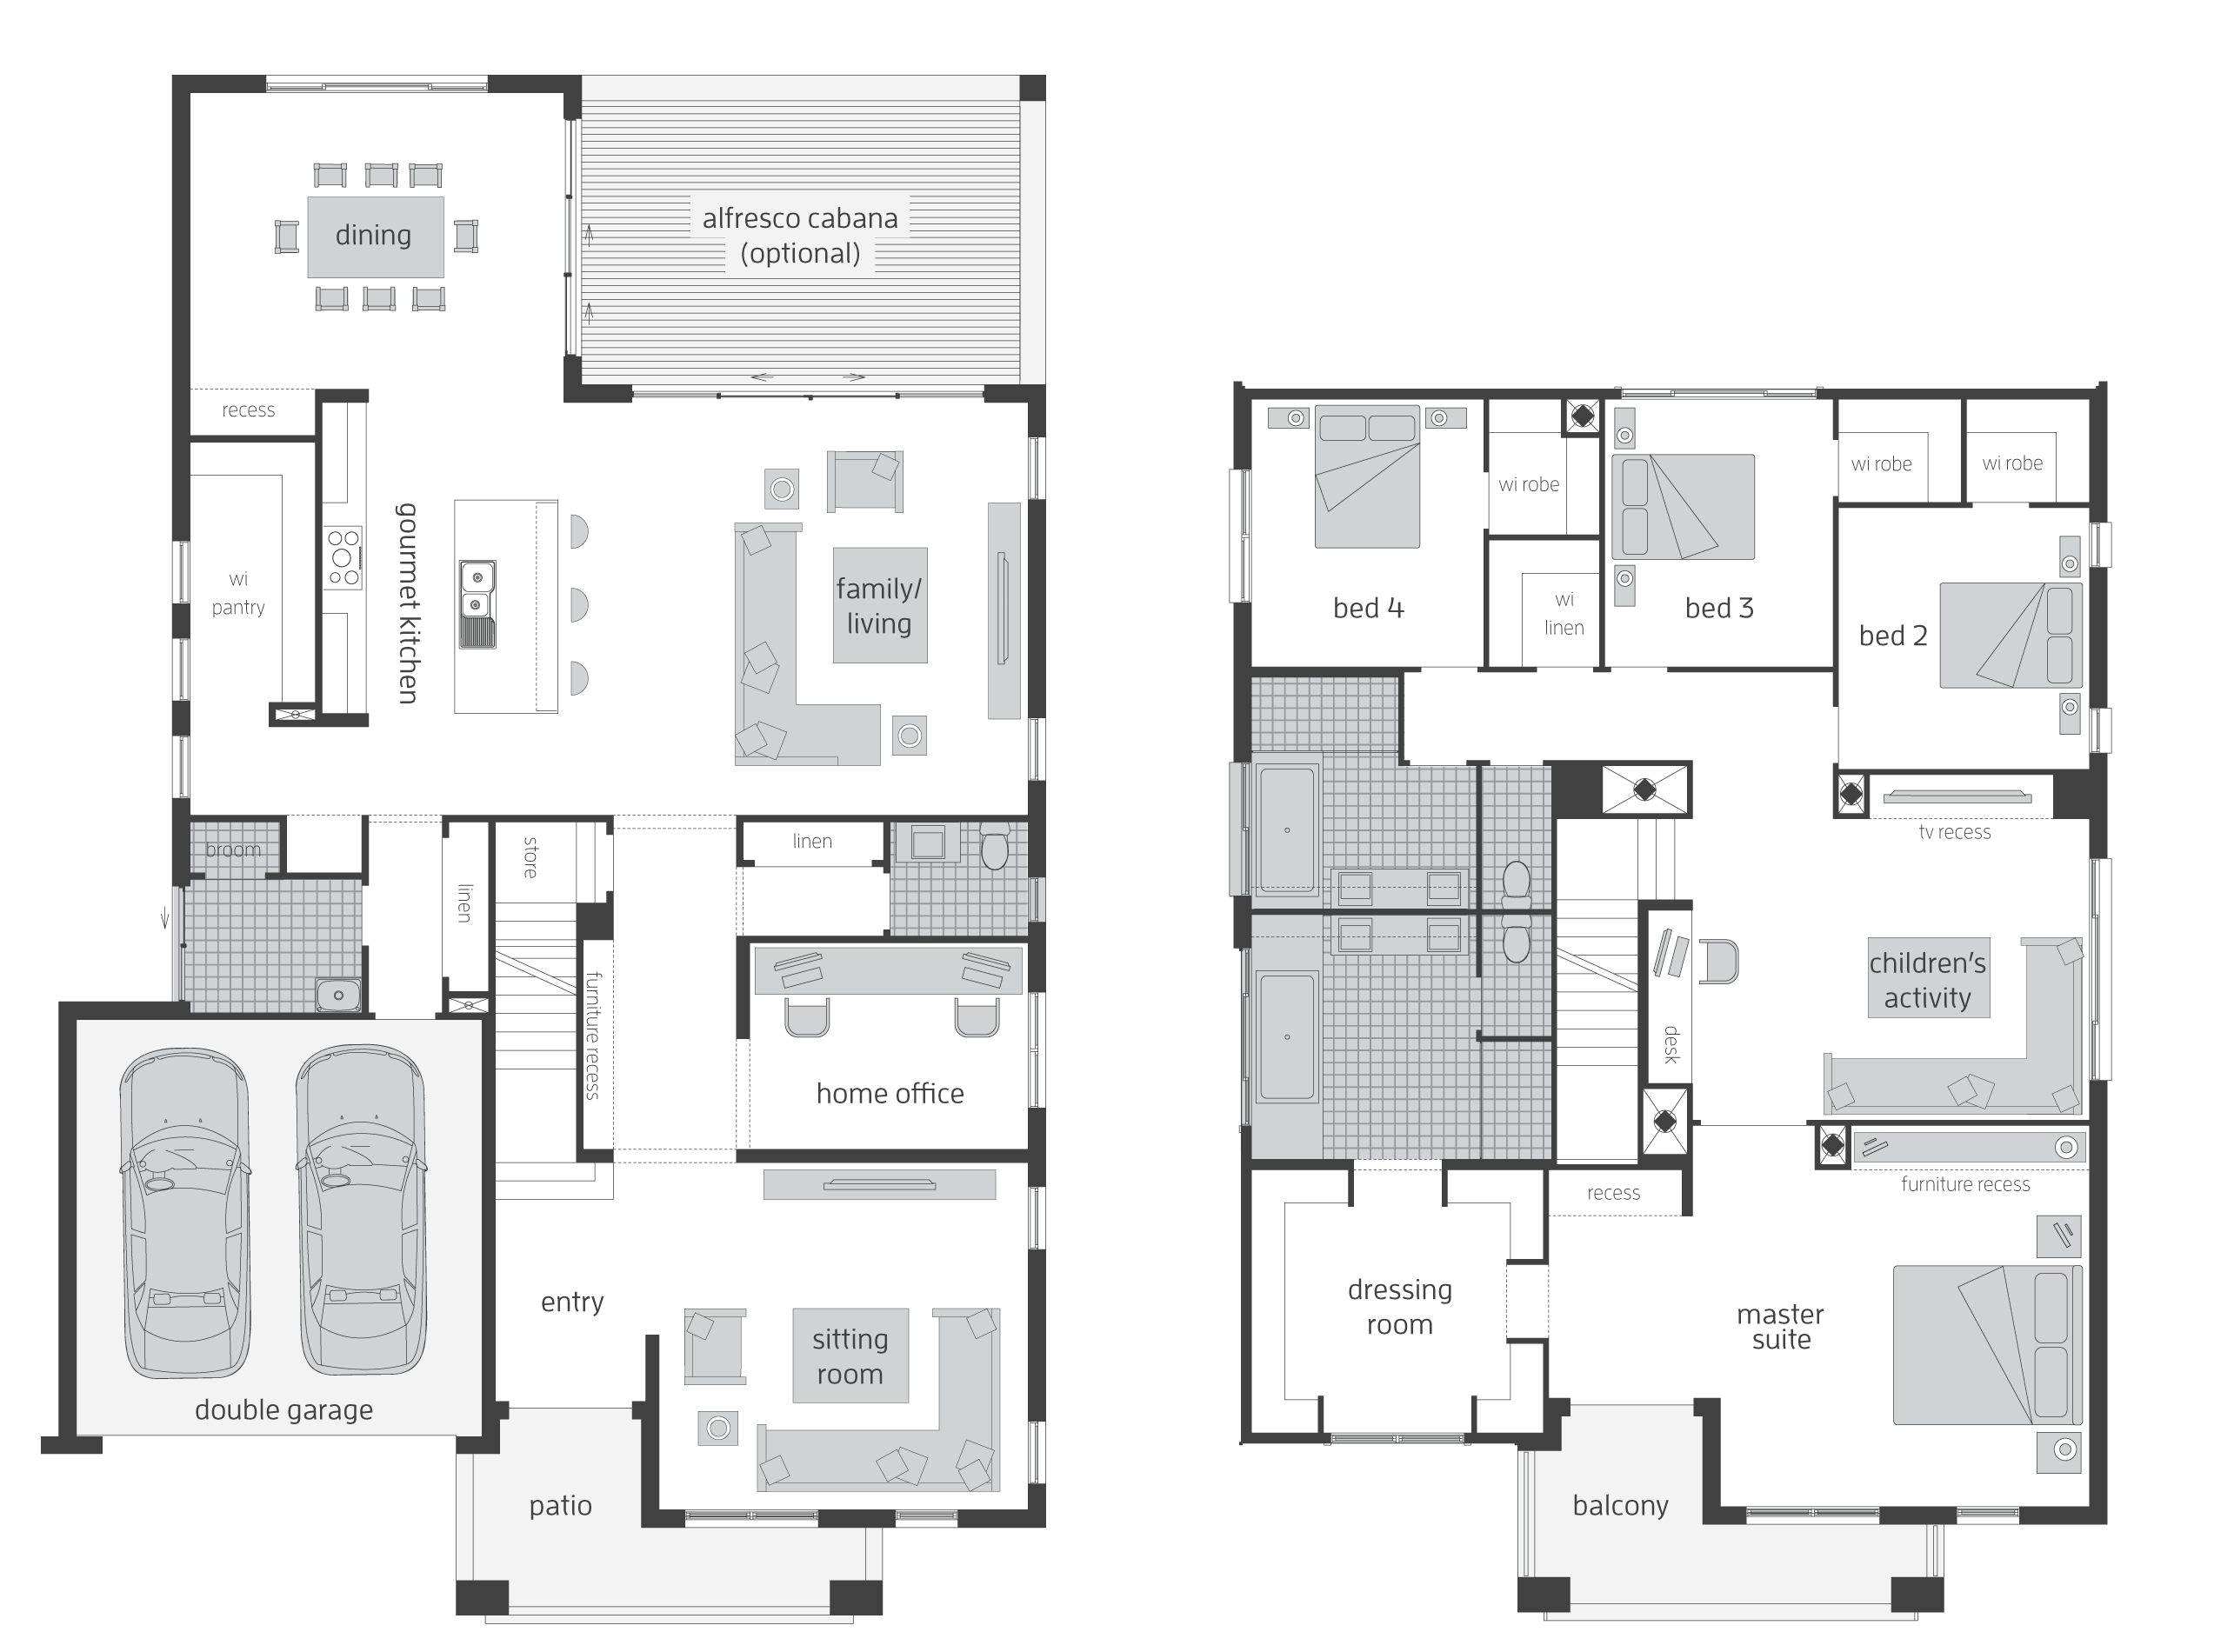 2 storey floor plan | Two storey house plans, Double ...